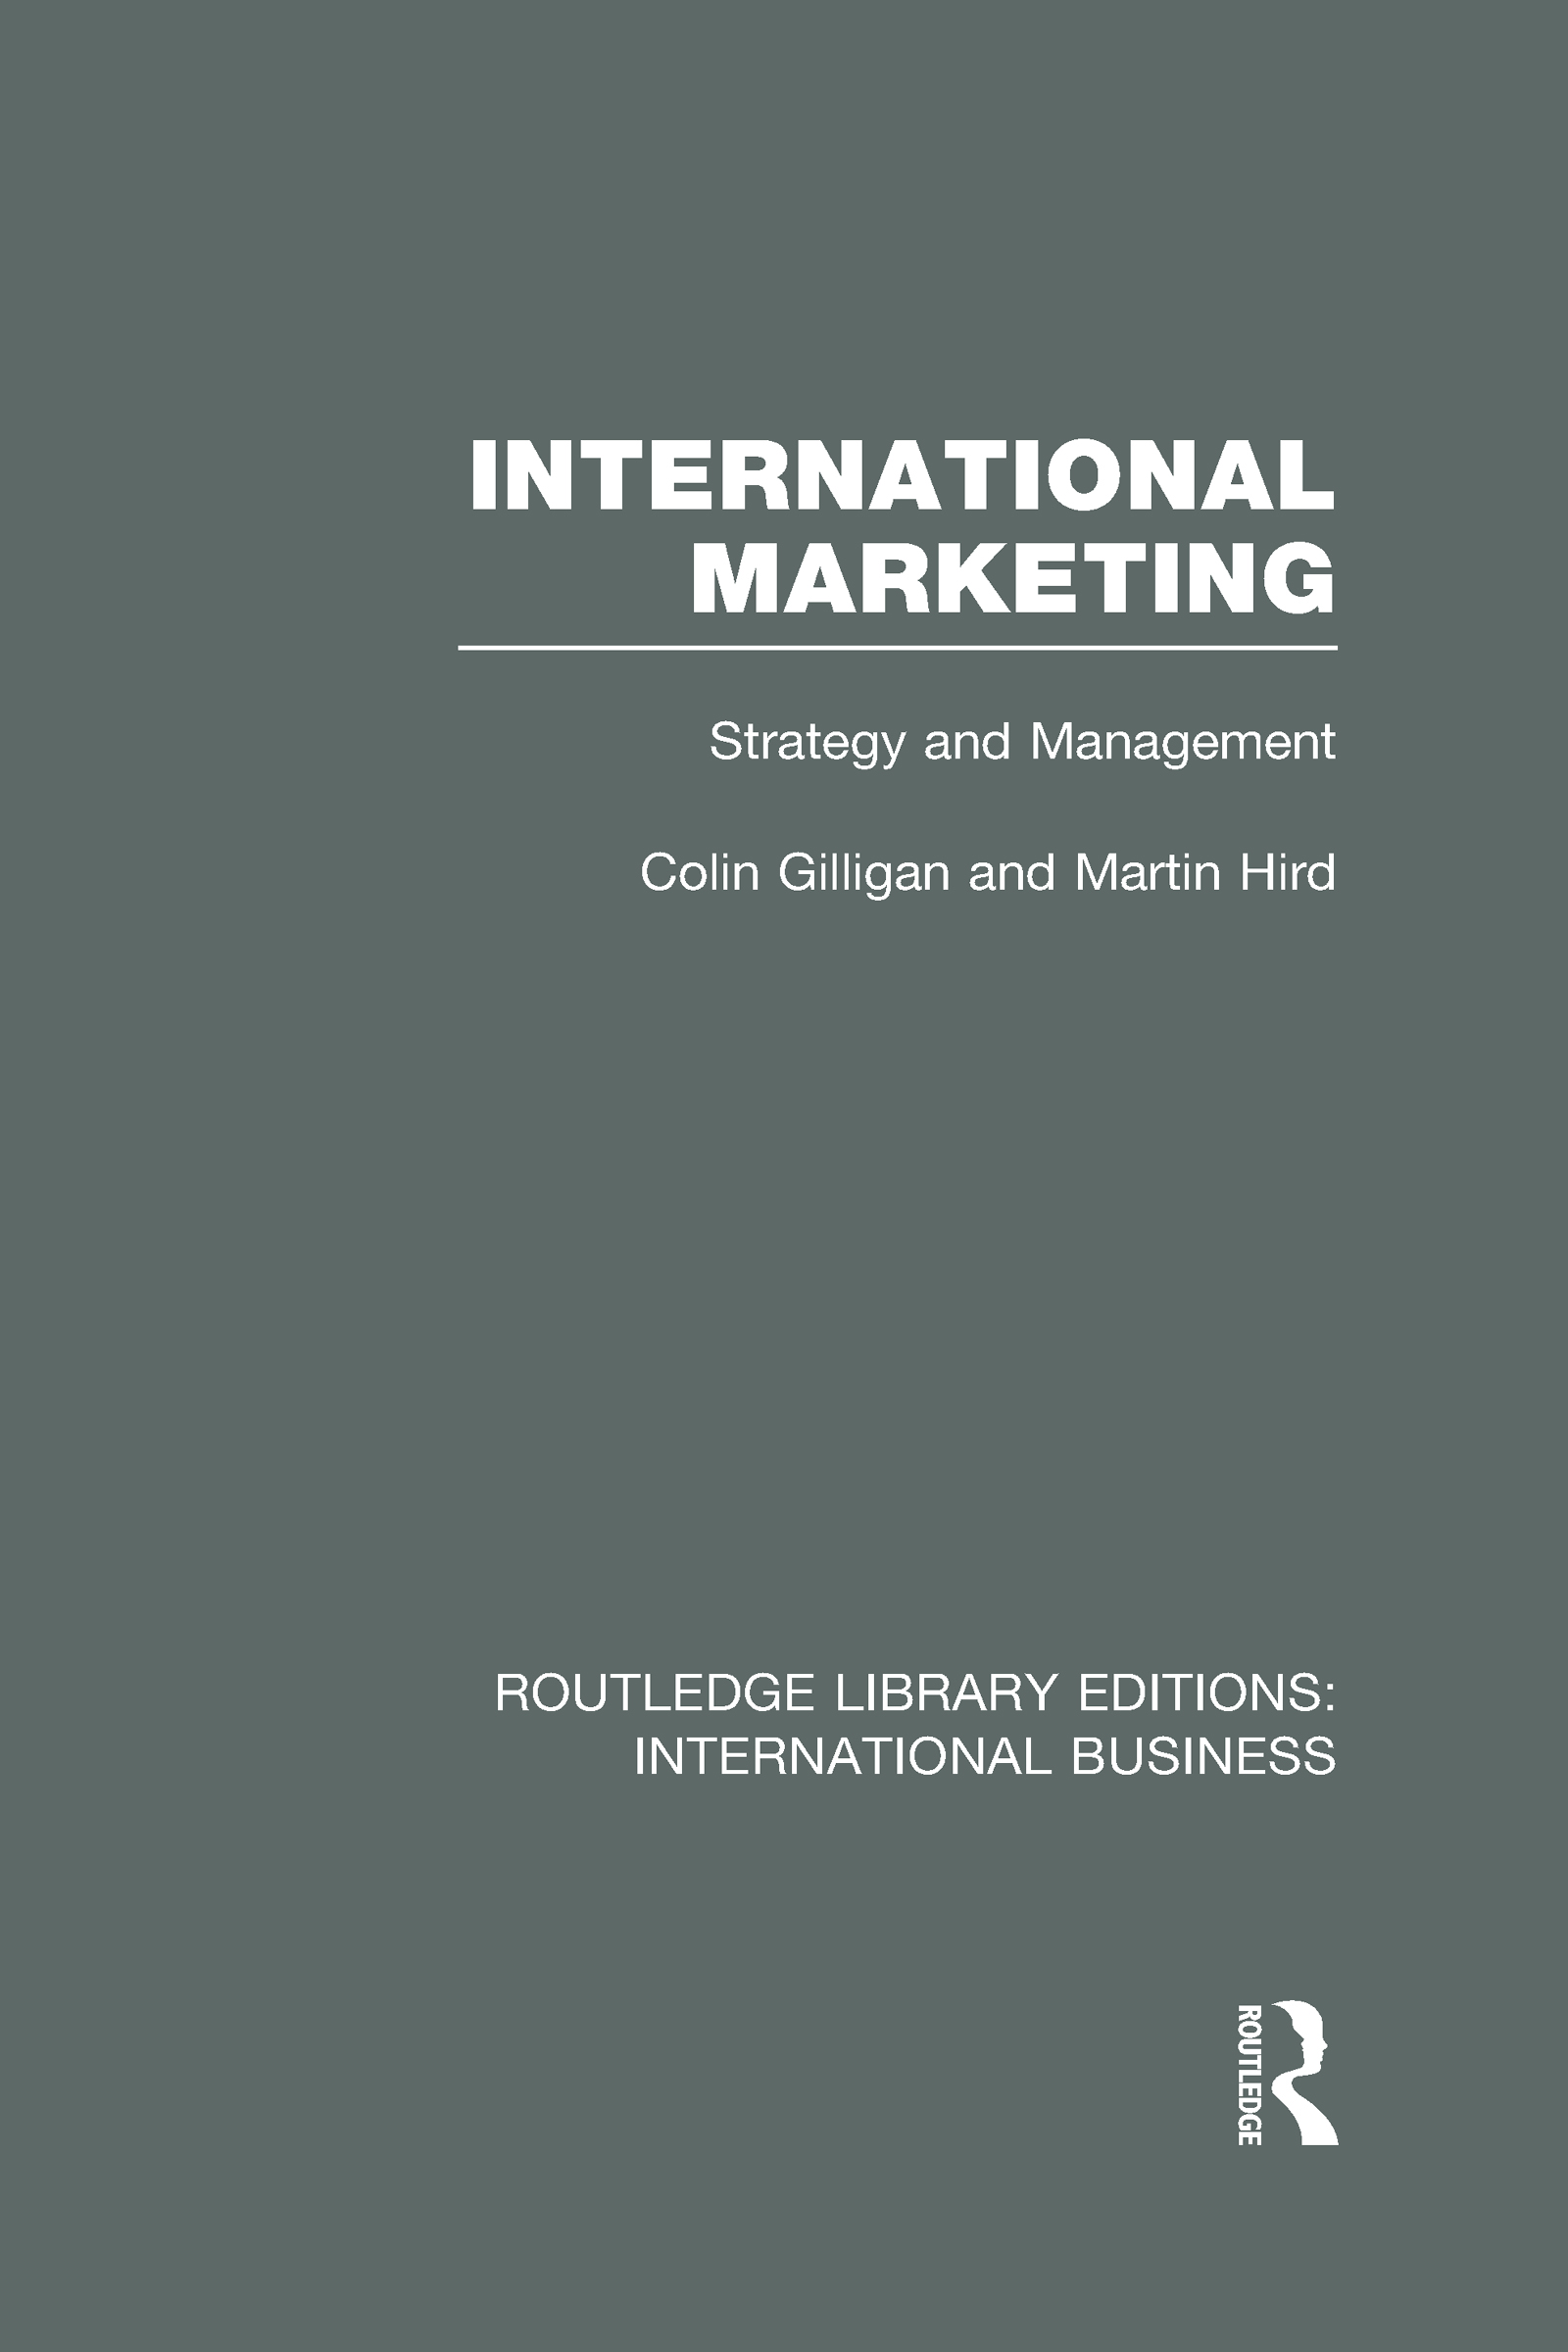 International Marketing (RLE International Business): Strategy and Management (Hardback) book cover